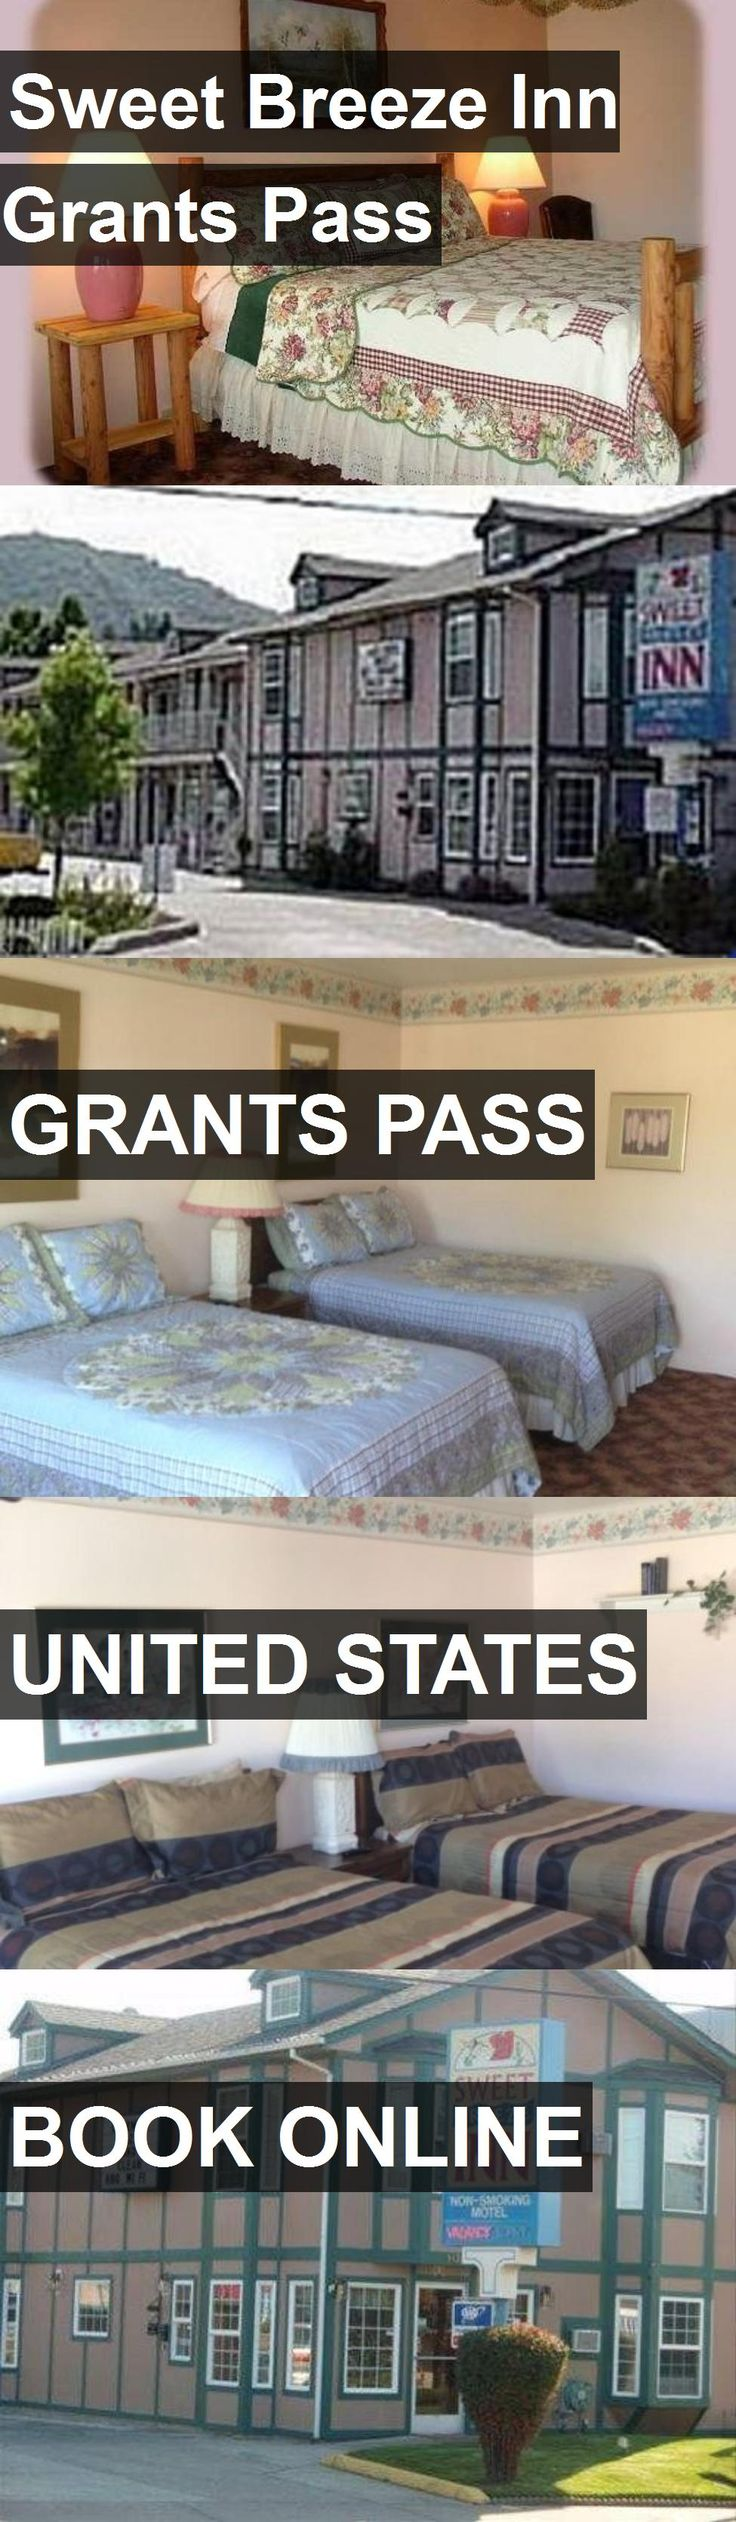 Hotel Sweet Breeze Inn Grants Pass in Grants Pass, United States. For more information, photos, reviews and best prices please follow the link. #UnitedStates #GrantsPass #SweetBreezeInnGrantsPass #hotel #travel #vacation